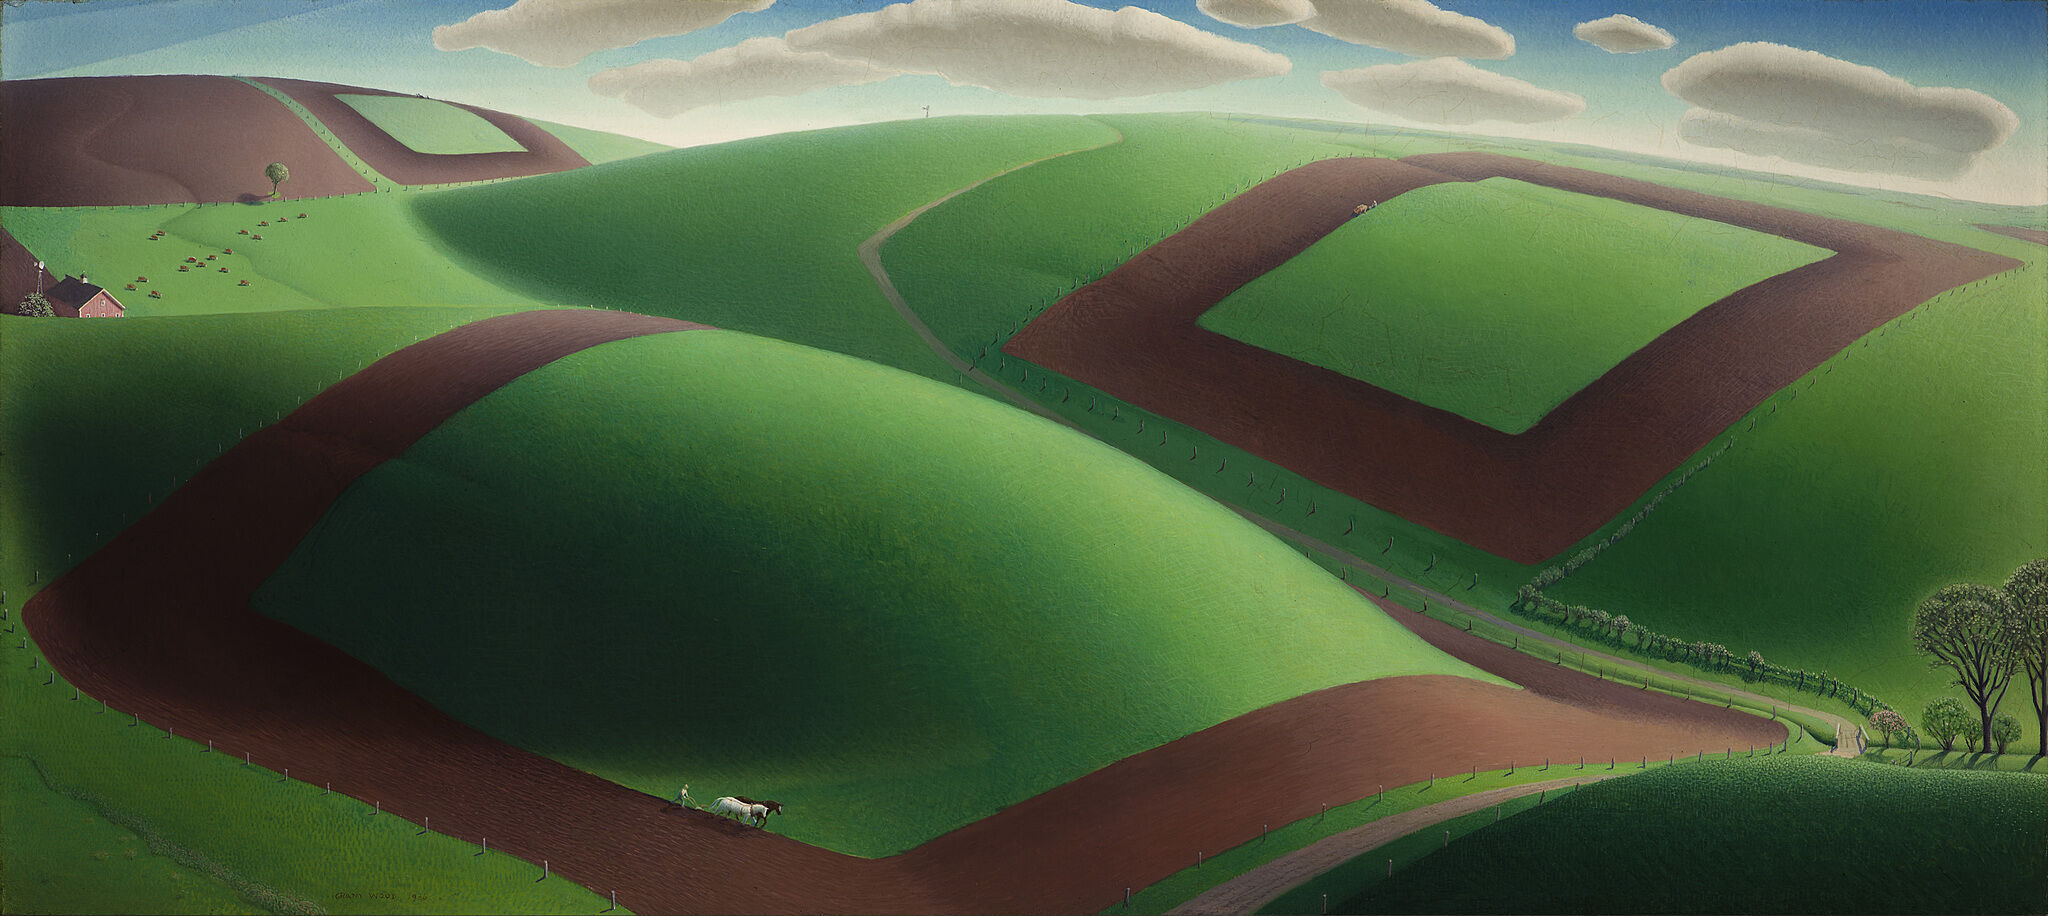 Aerial landscape painting of green fields with dirt tractor paths.